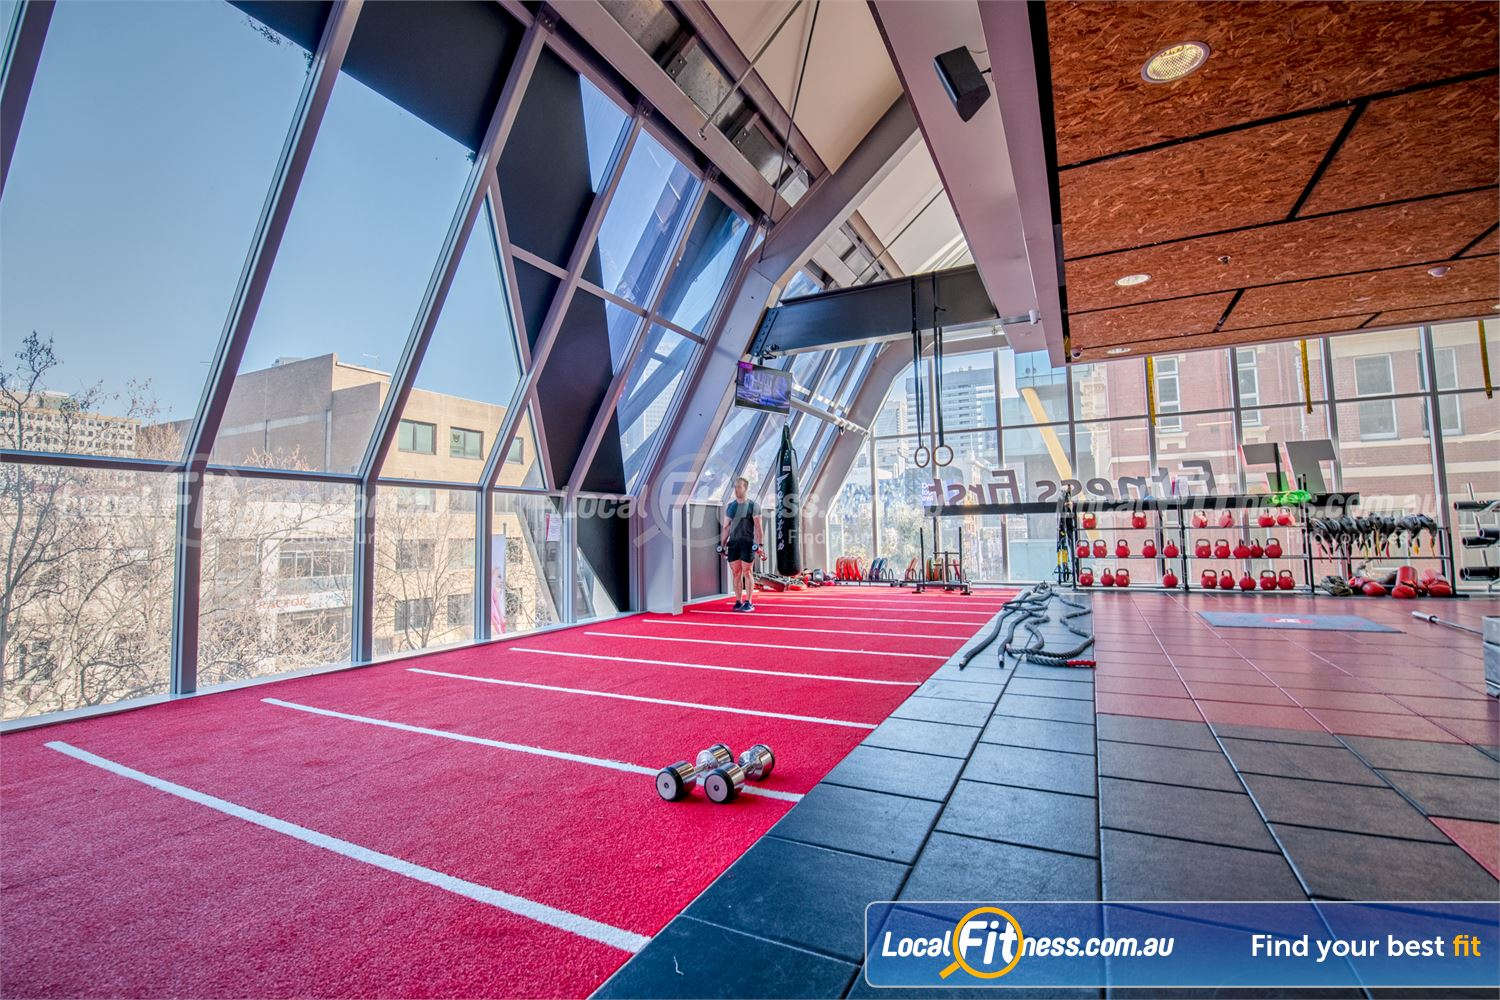 Fitness First QV Platinum Melbourne Welcome to the state of the art Fitness First QV Platinum gym.